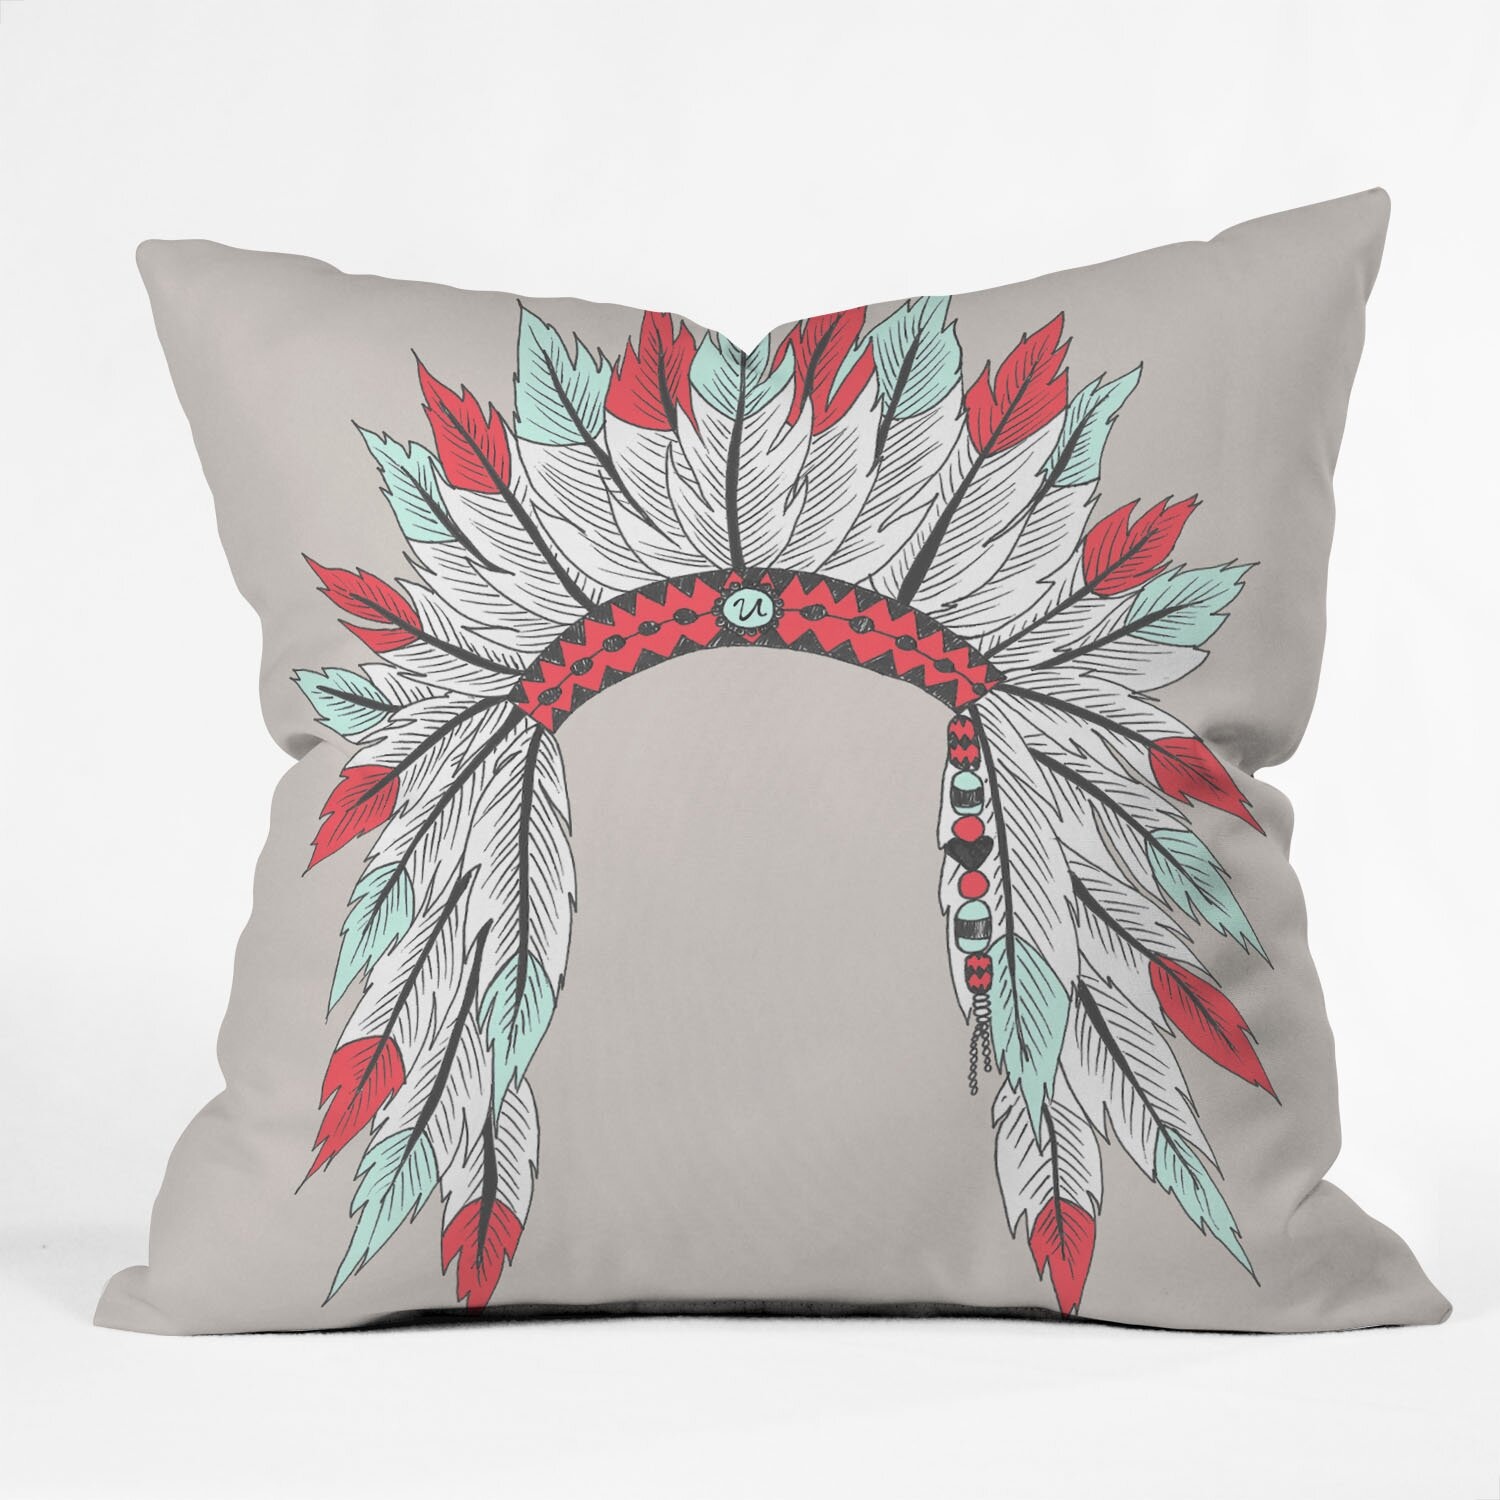 DENY Designs Wesley Bird Dressy Throw Pillow & Reviews Wayfair